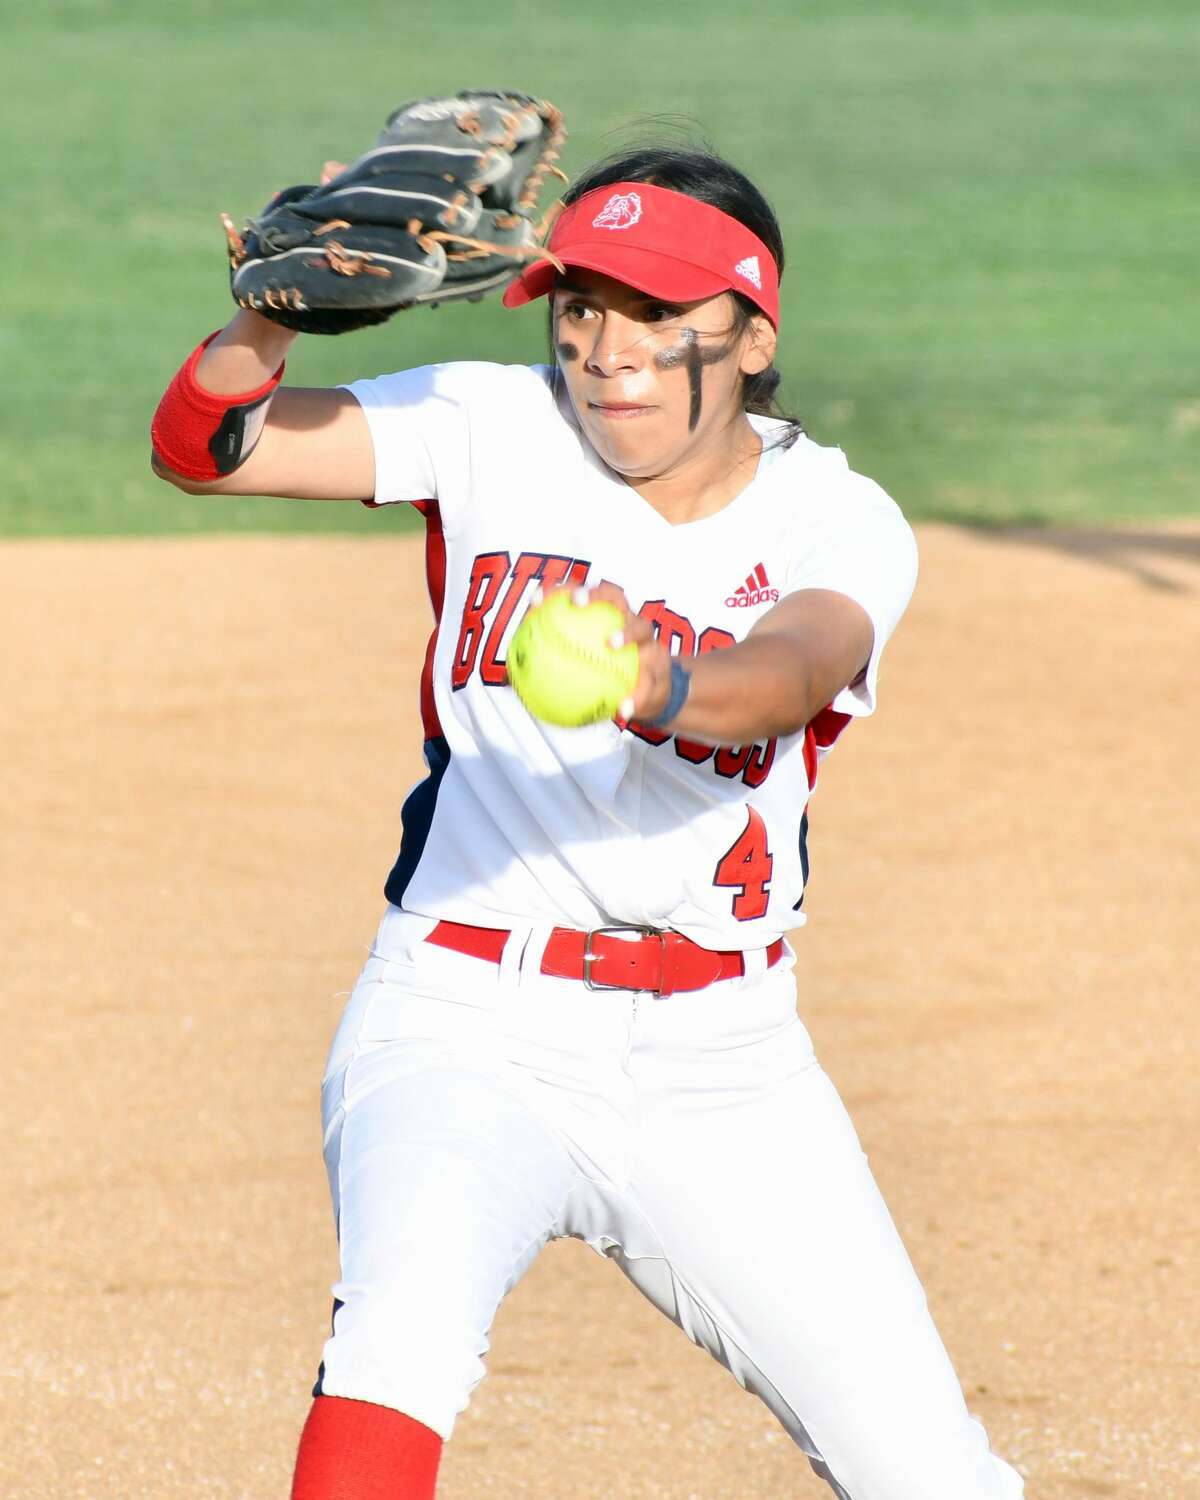 SammyBriones pitched four innings and struck out 10 batters, walked one and hit another.